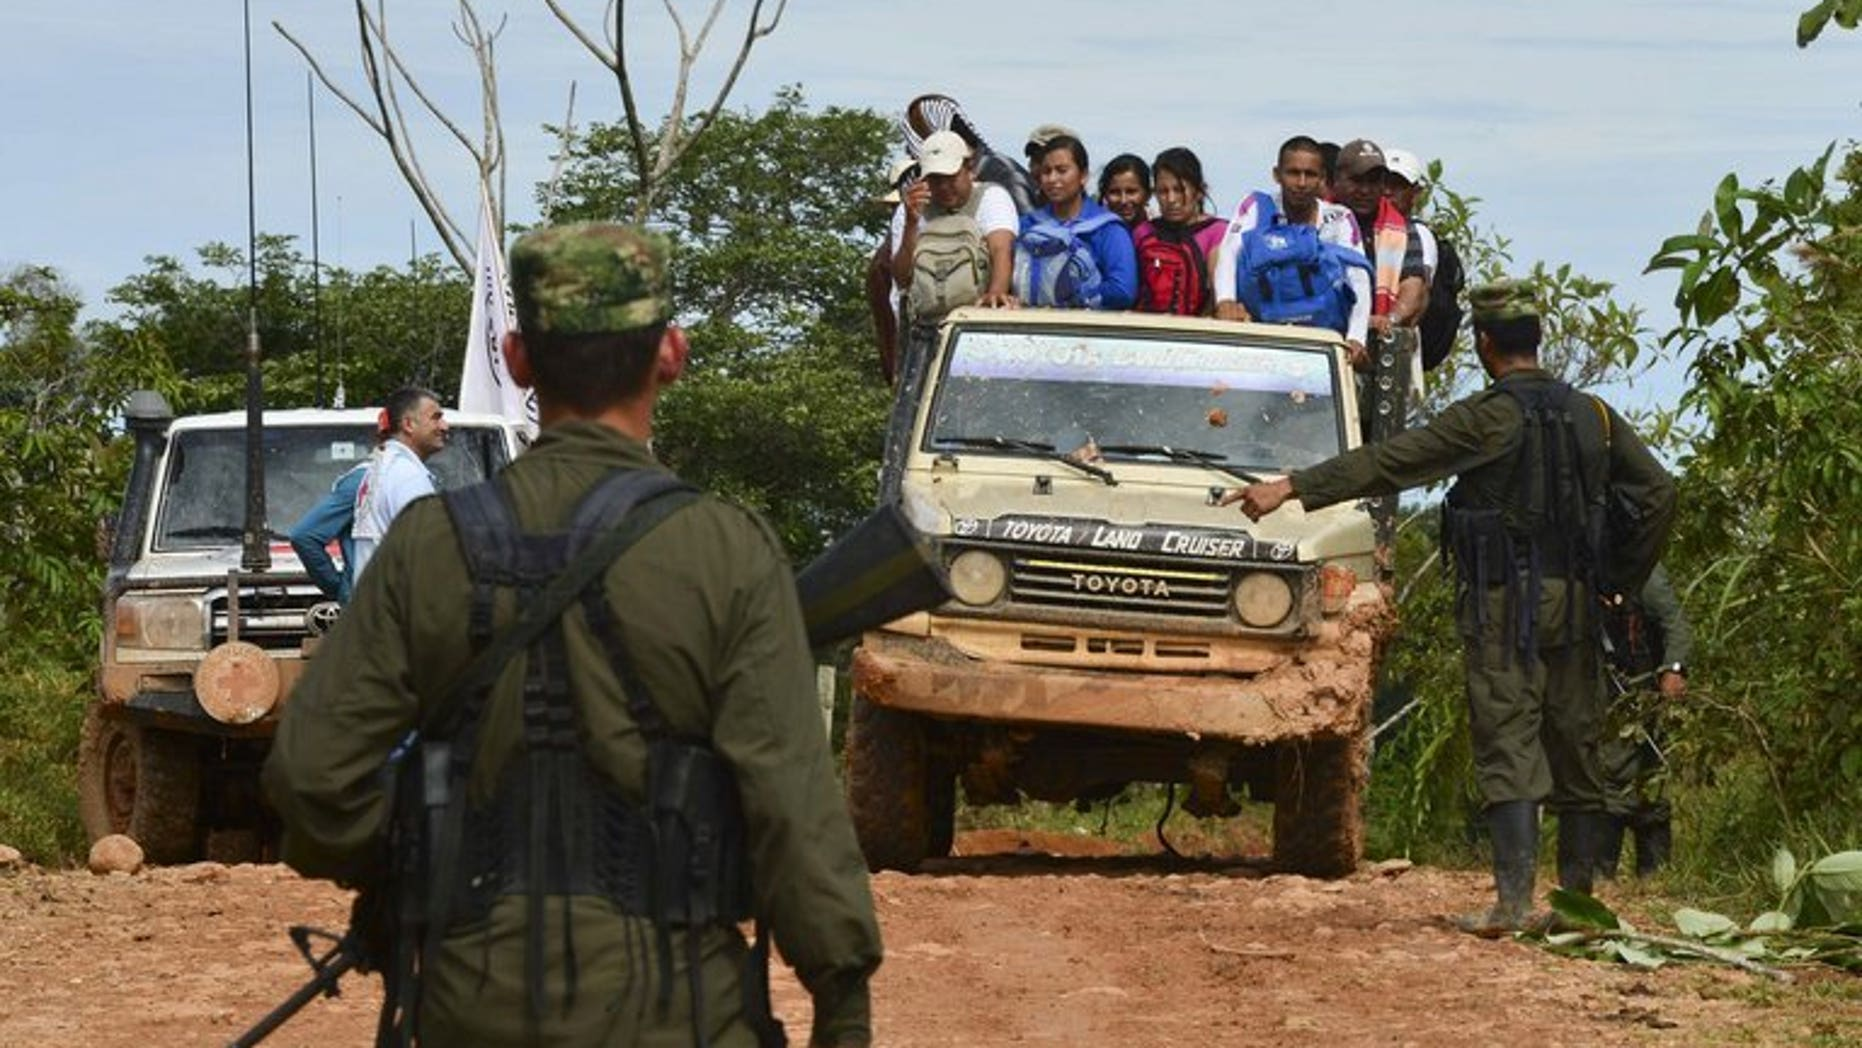 Revolutionary Armed Forces of Colombia (FARC) rebels set up a check-point near San Isidro, Caqueta, on May 30, 2012. Six guerrillas from the leftist FARC rebel group and four Colombian soldiers have been killed in clashes in southwest Colombia, the military said.